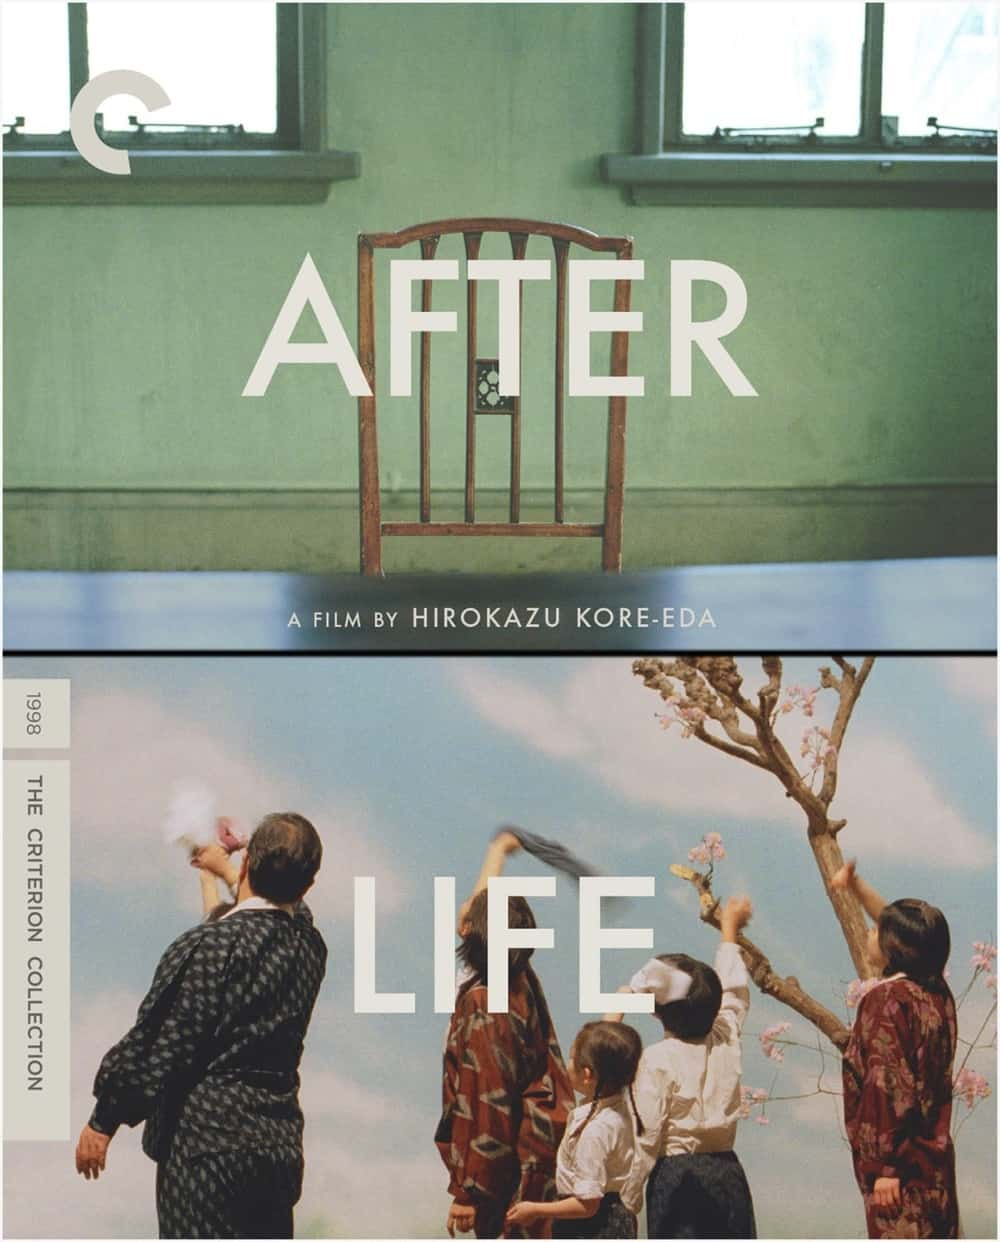 After Life Criterion Collection Bluray CoverAshes And Diamonds Criterion Collection Bluray Cover